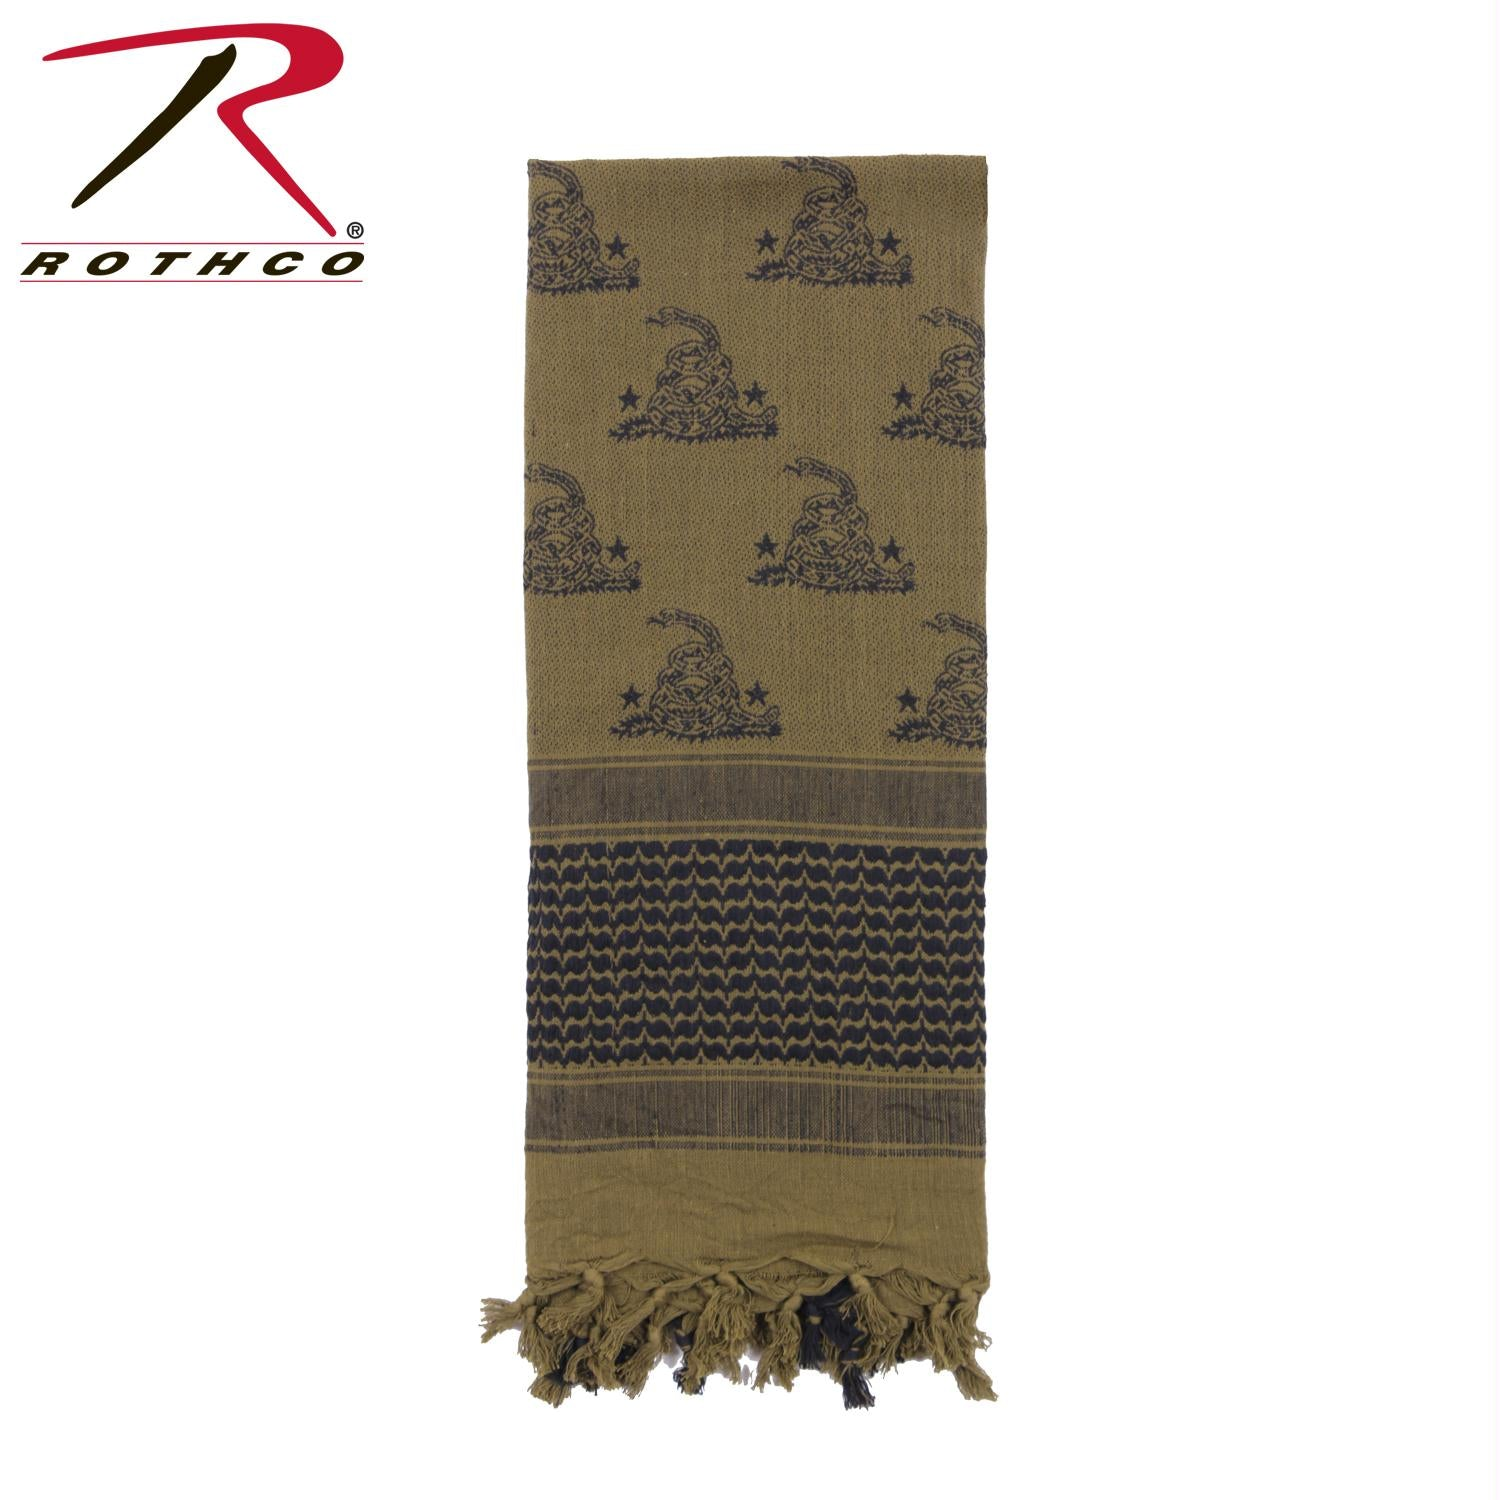 Rothco Gadsden Snake Shemagh Tactical Desert Scarf - Olive Drab